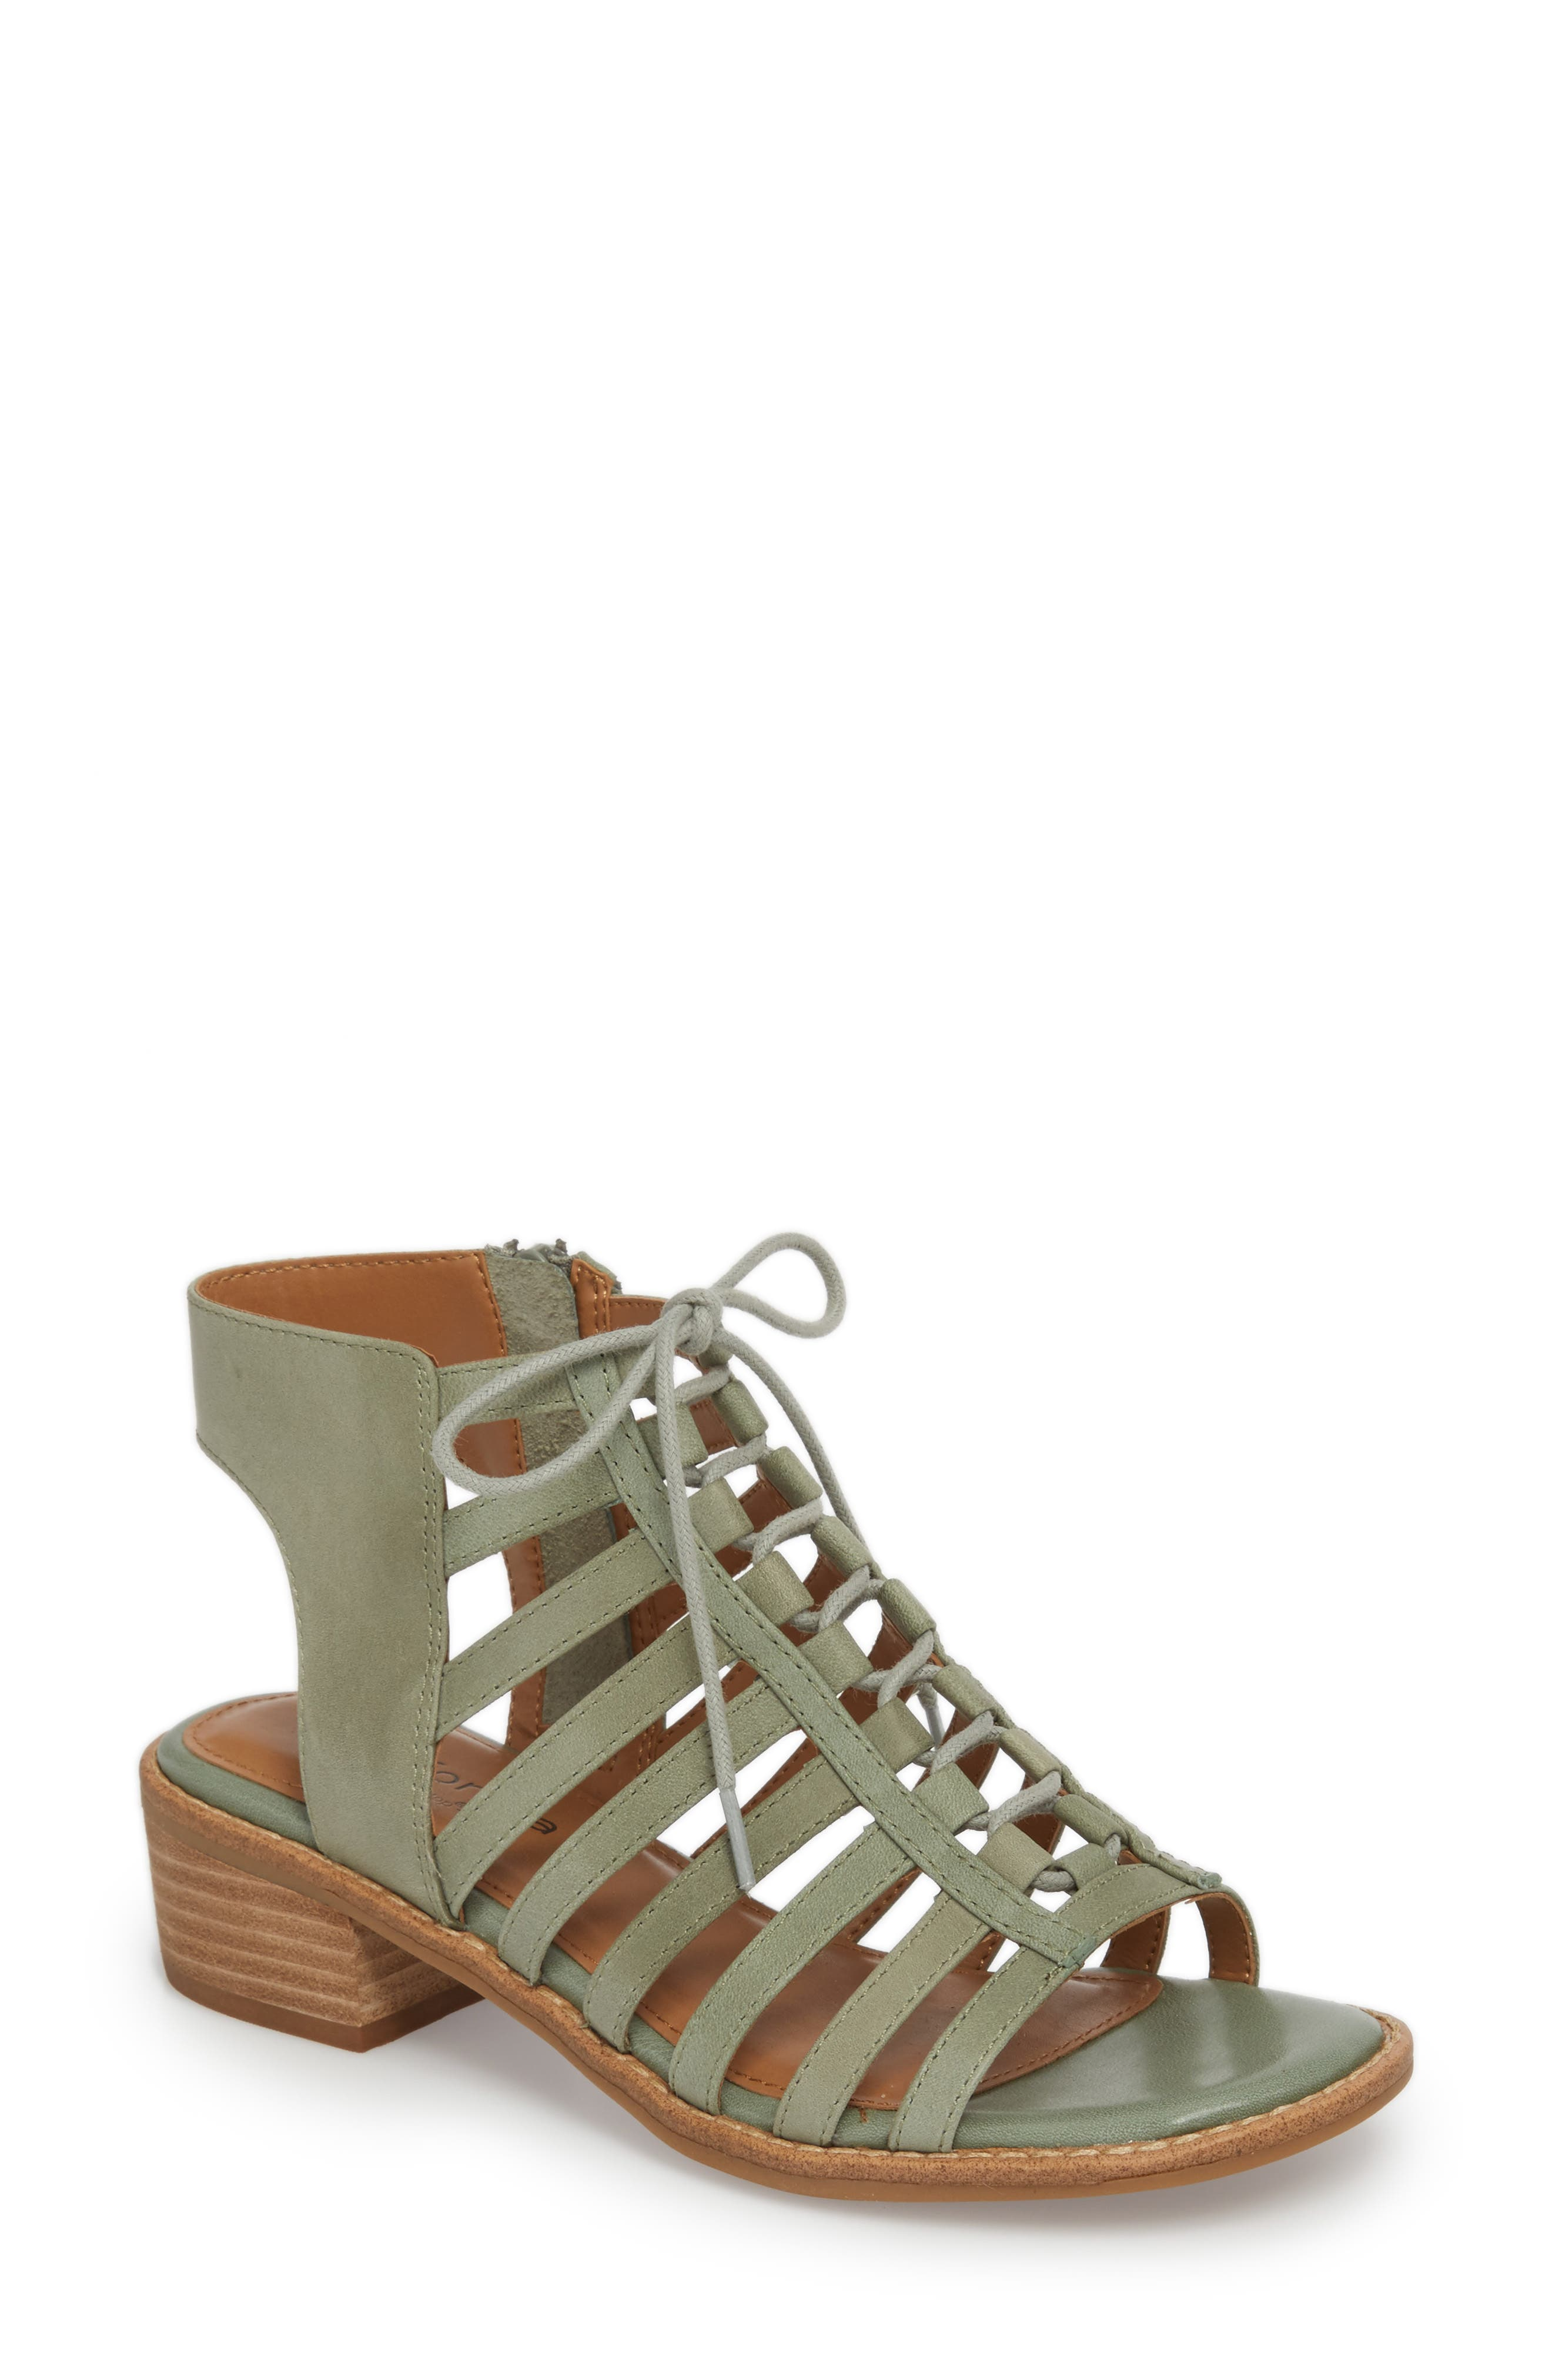 COMFORTIVA, Blossom Sandal, Main thumbnail 1, color, SAGE LEATHER